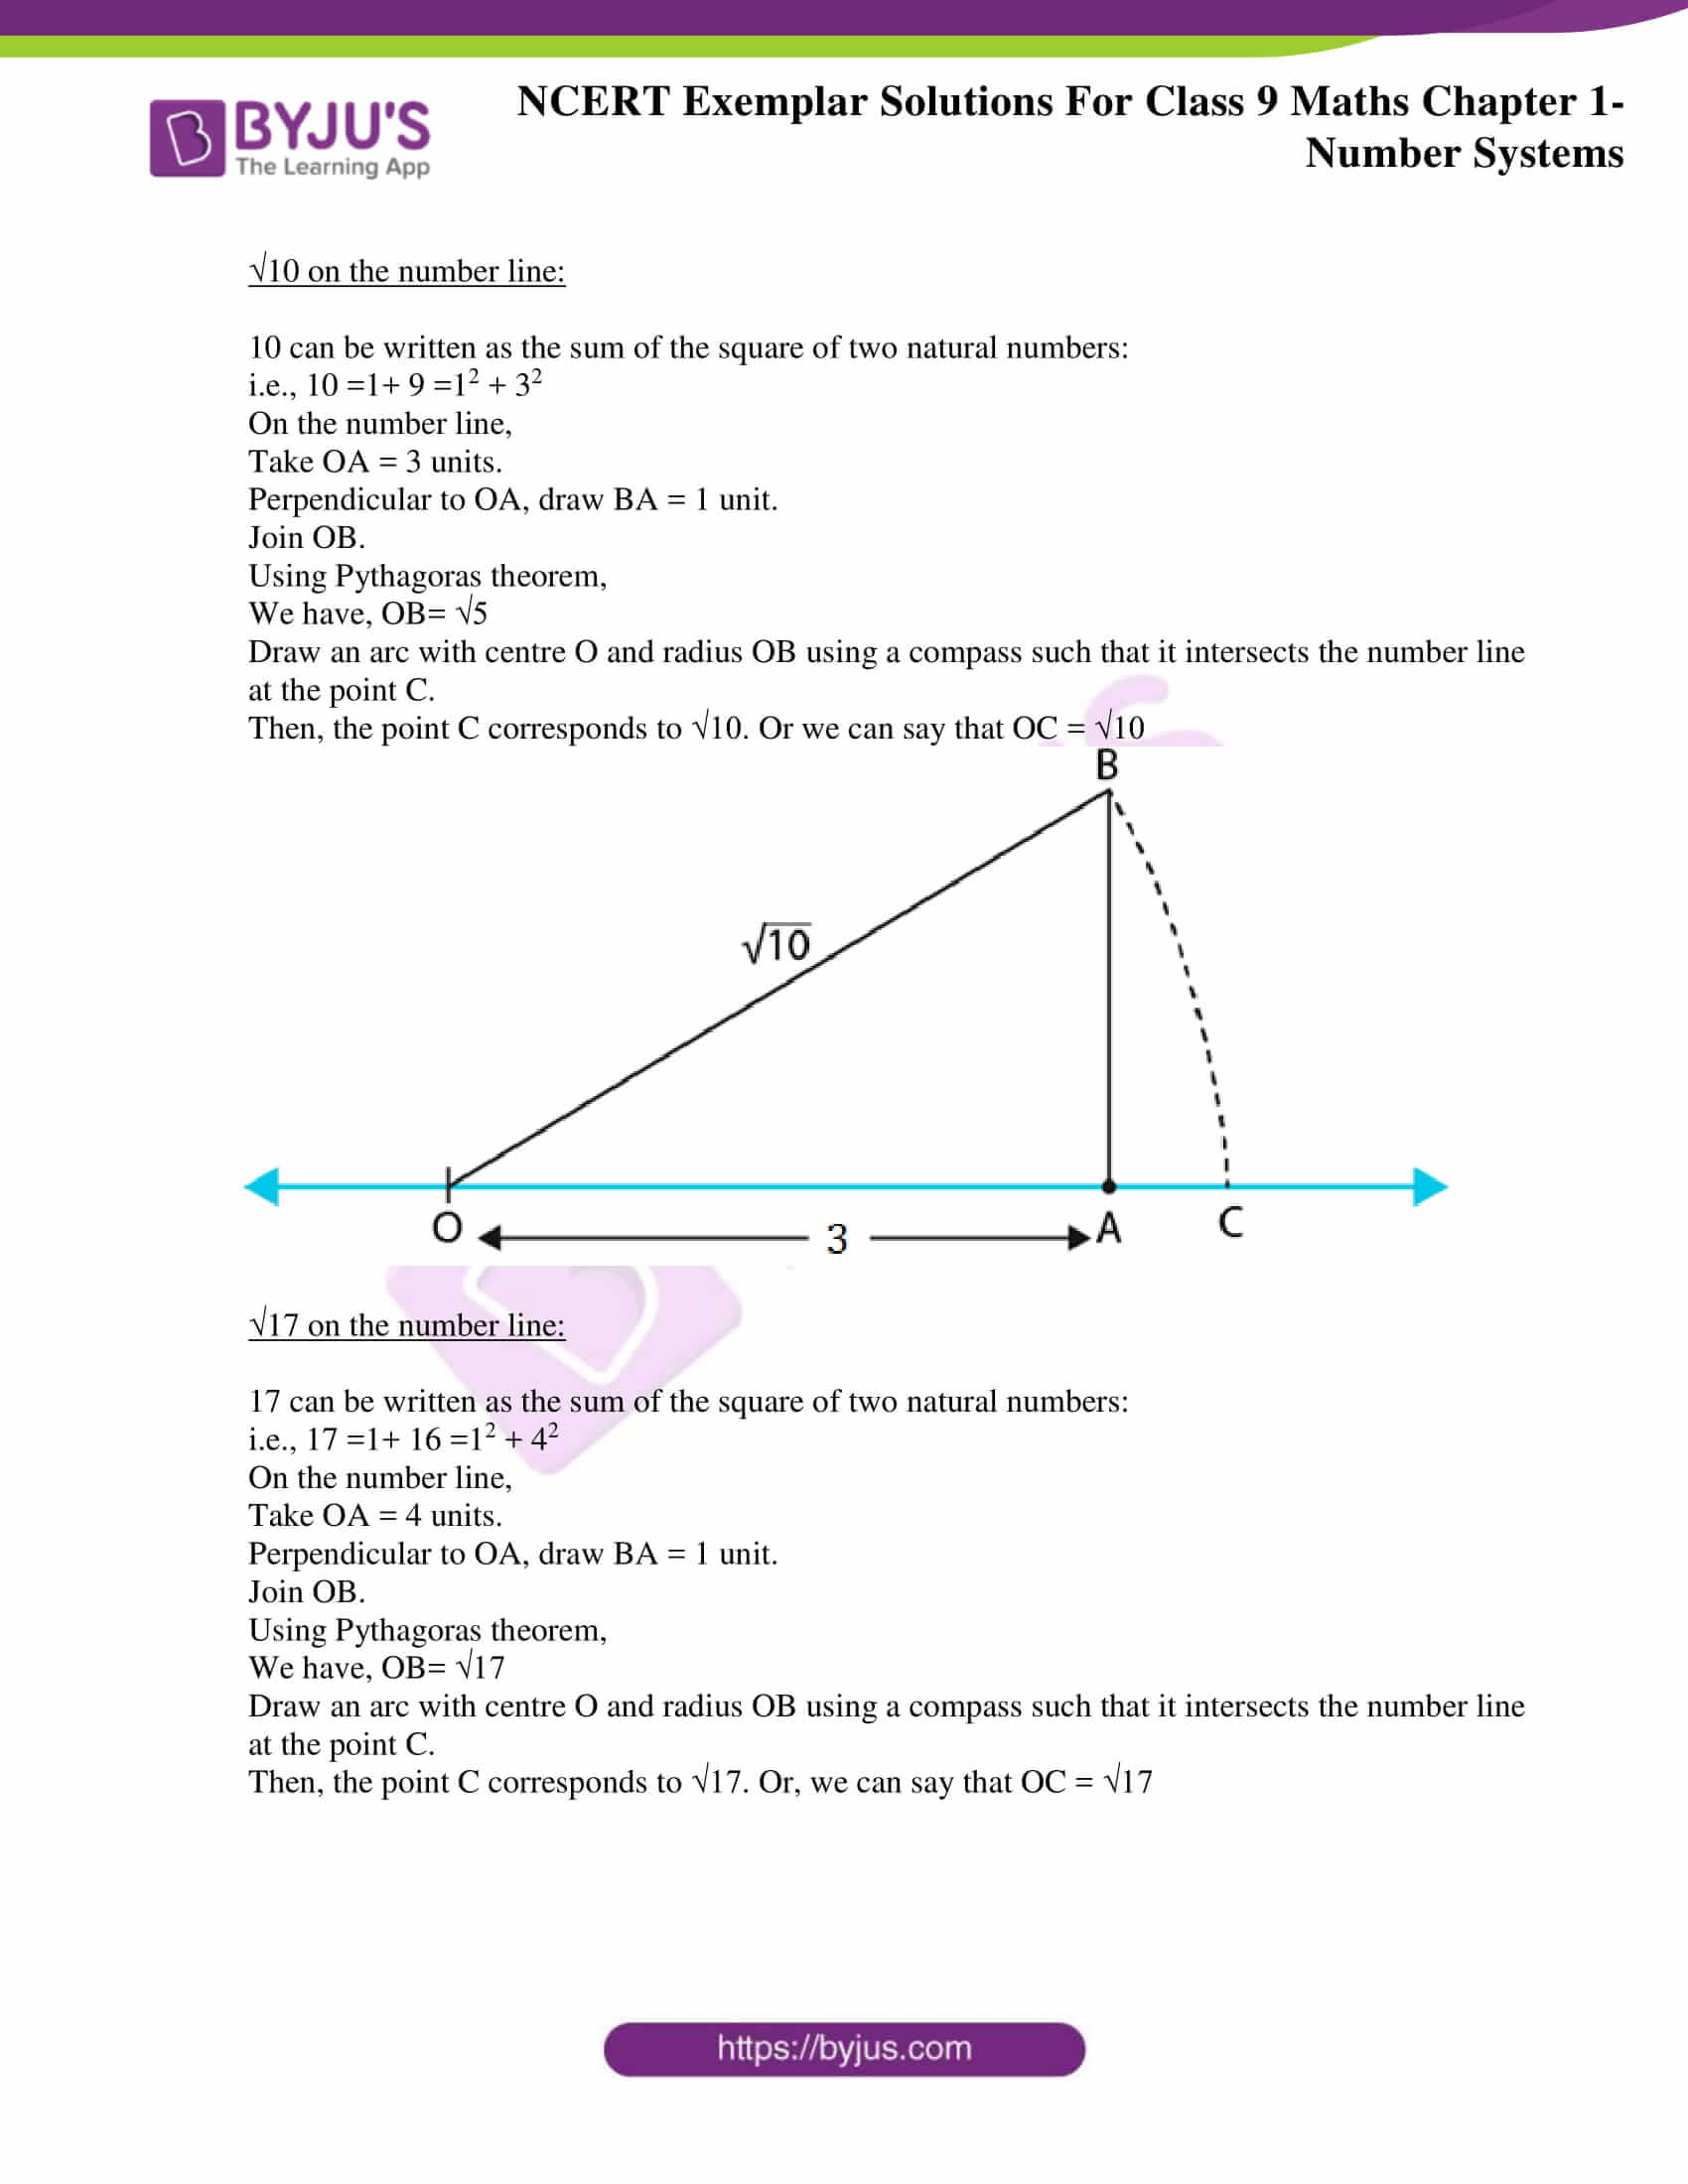 NCERT Exemplar Solutions for Class 9 Maths Chapter 1 10